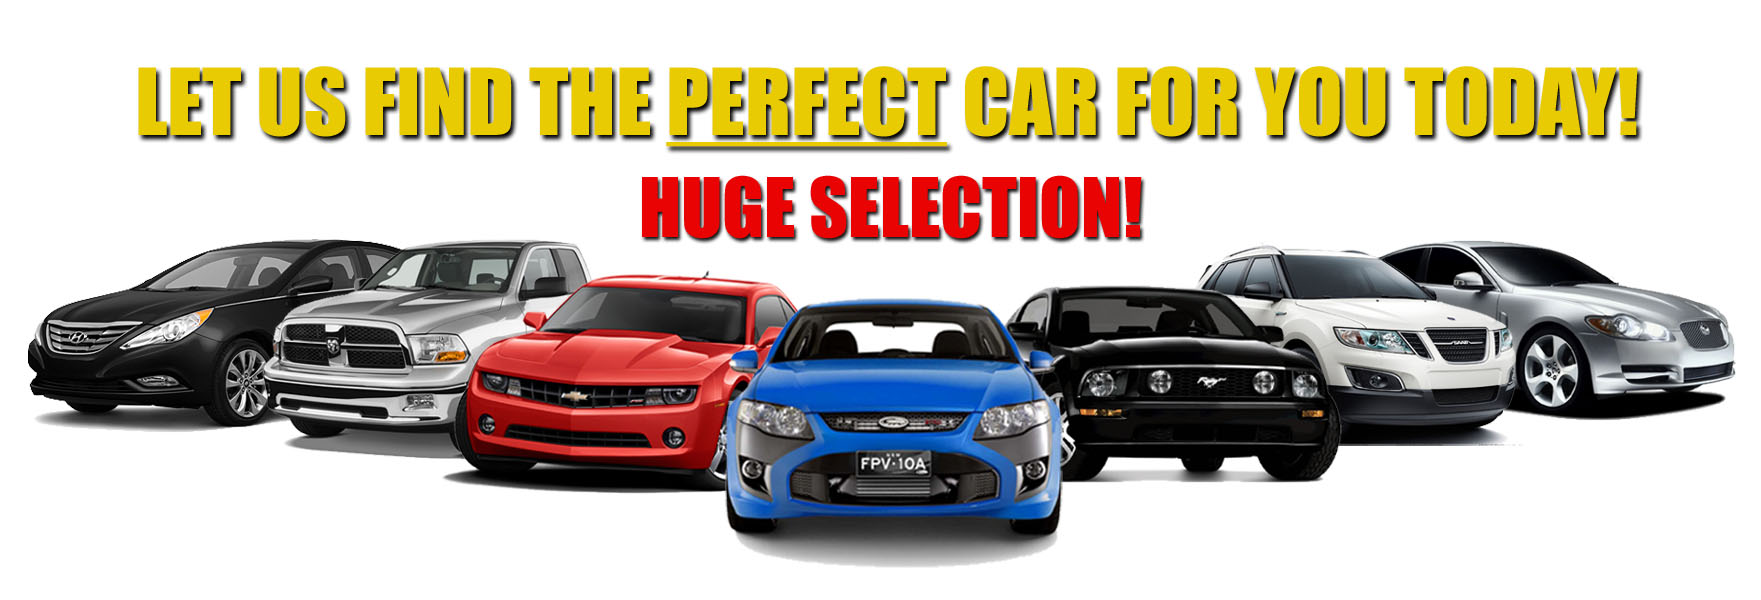 Best Websites For Used Cars In Pakistan